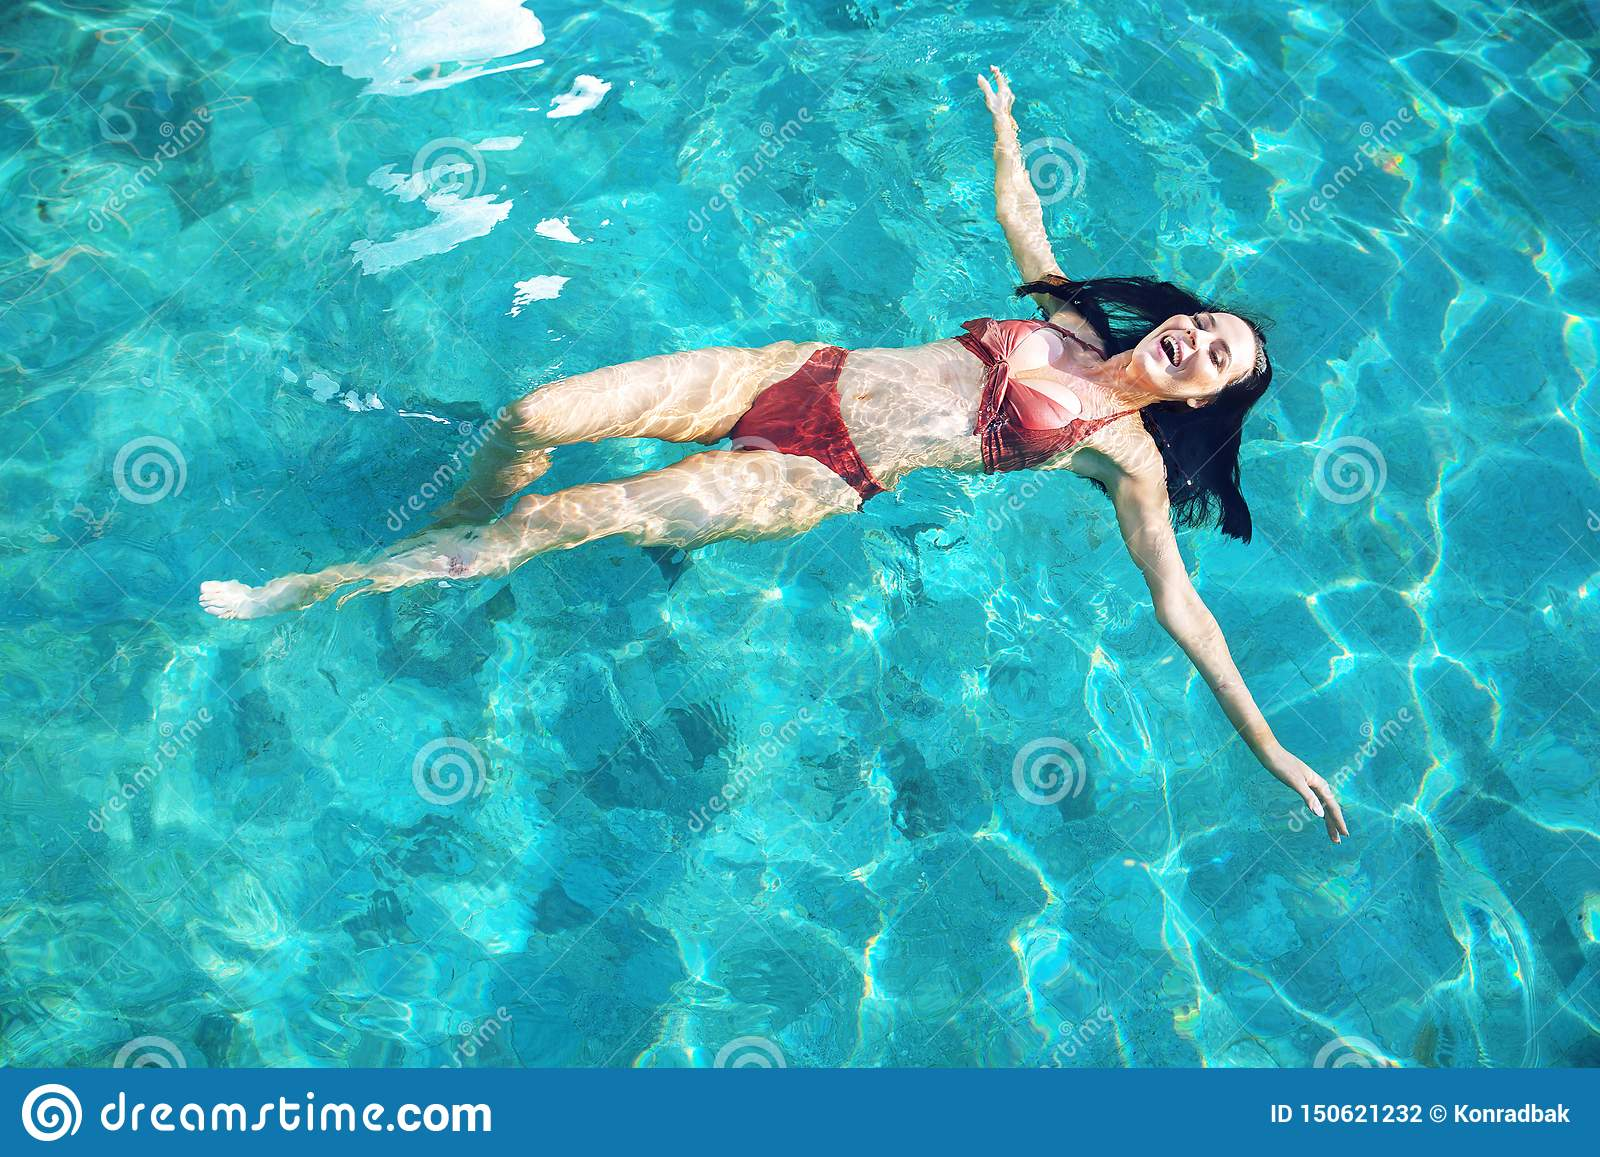 Sensual woman relaxing in the tropical, luxurious pool